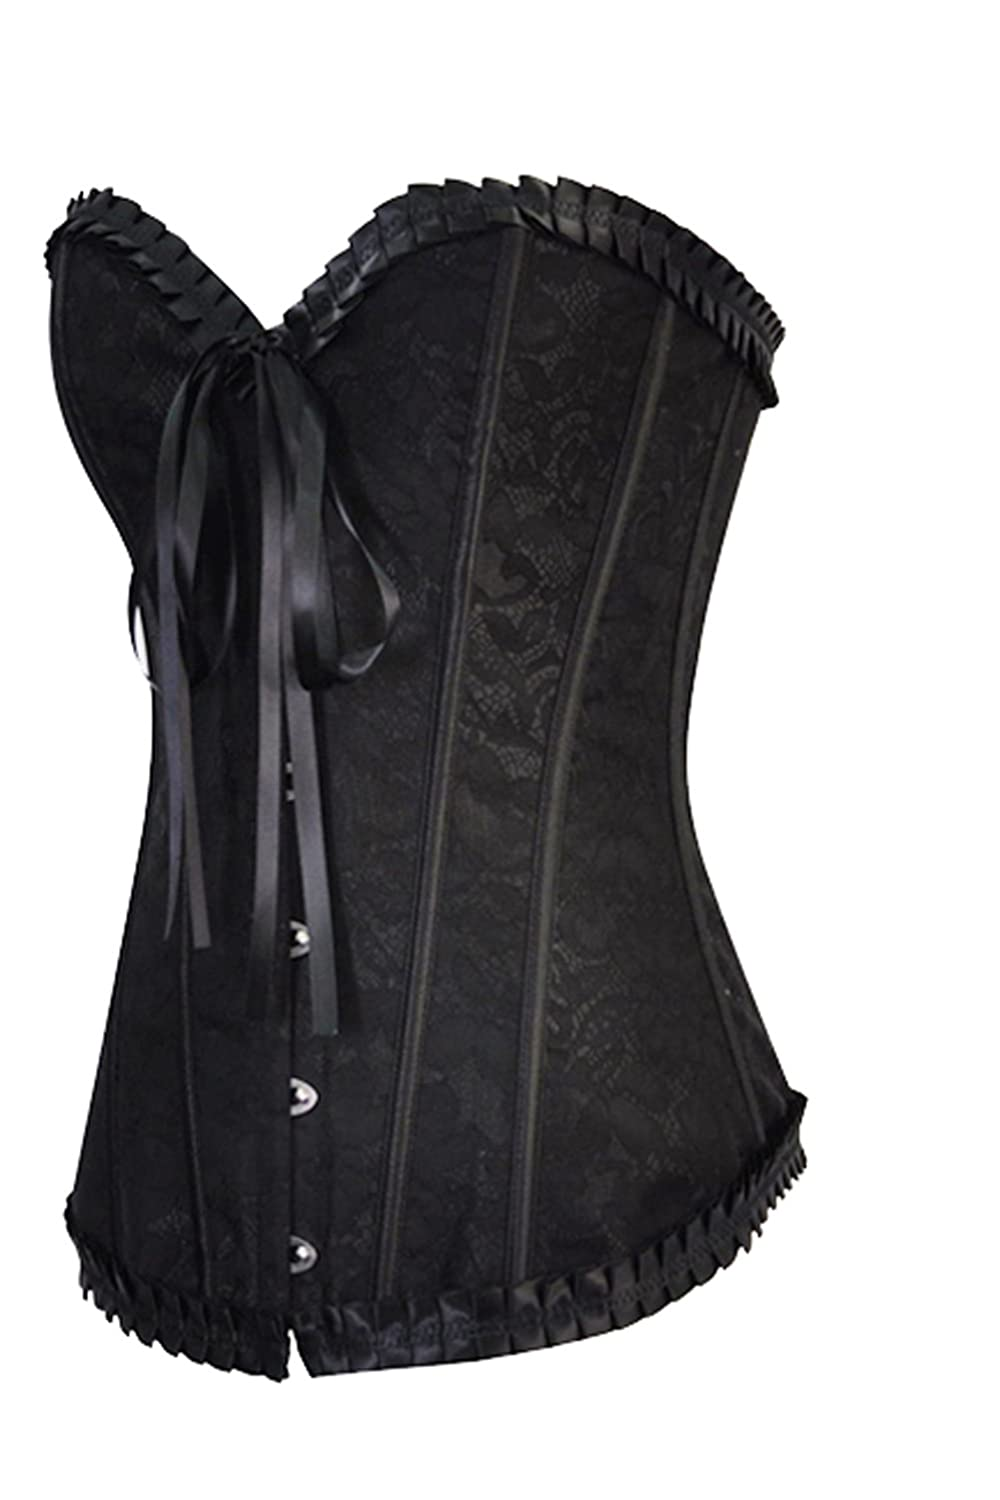 ZAMME Womens Embroidered Lace Overbust Corsets